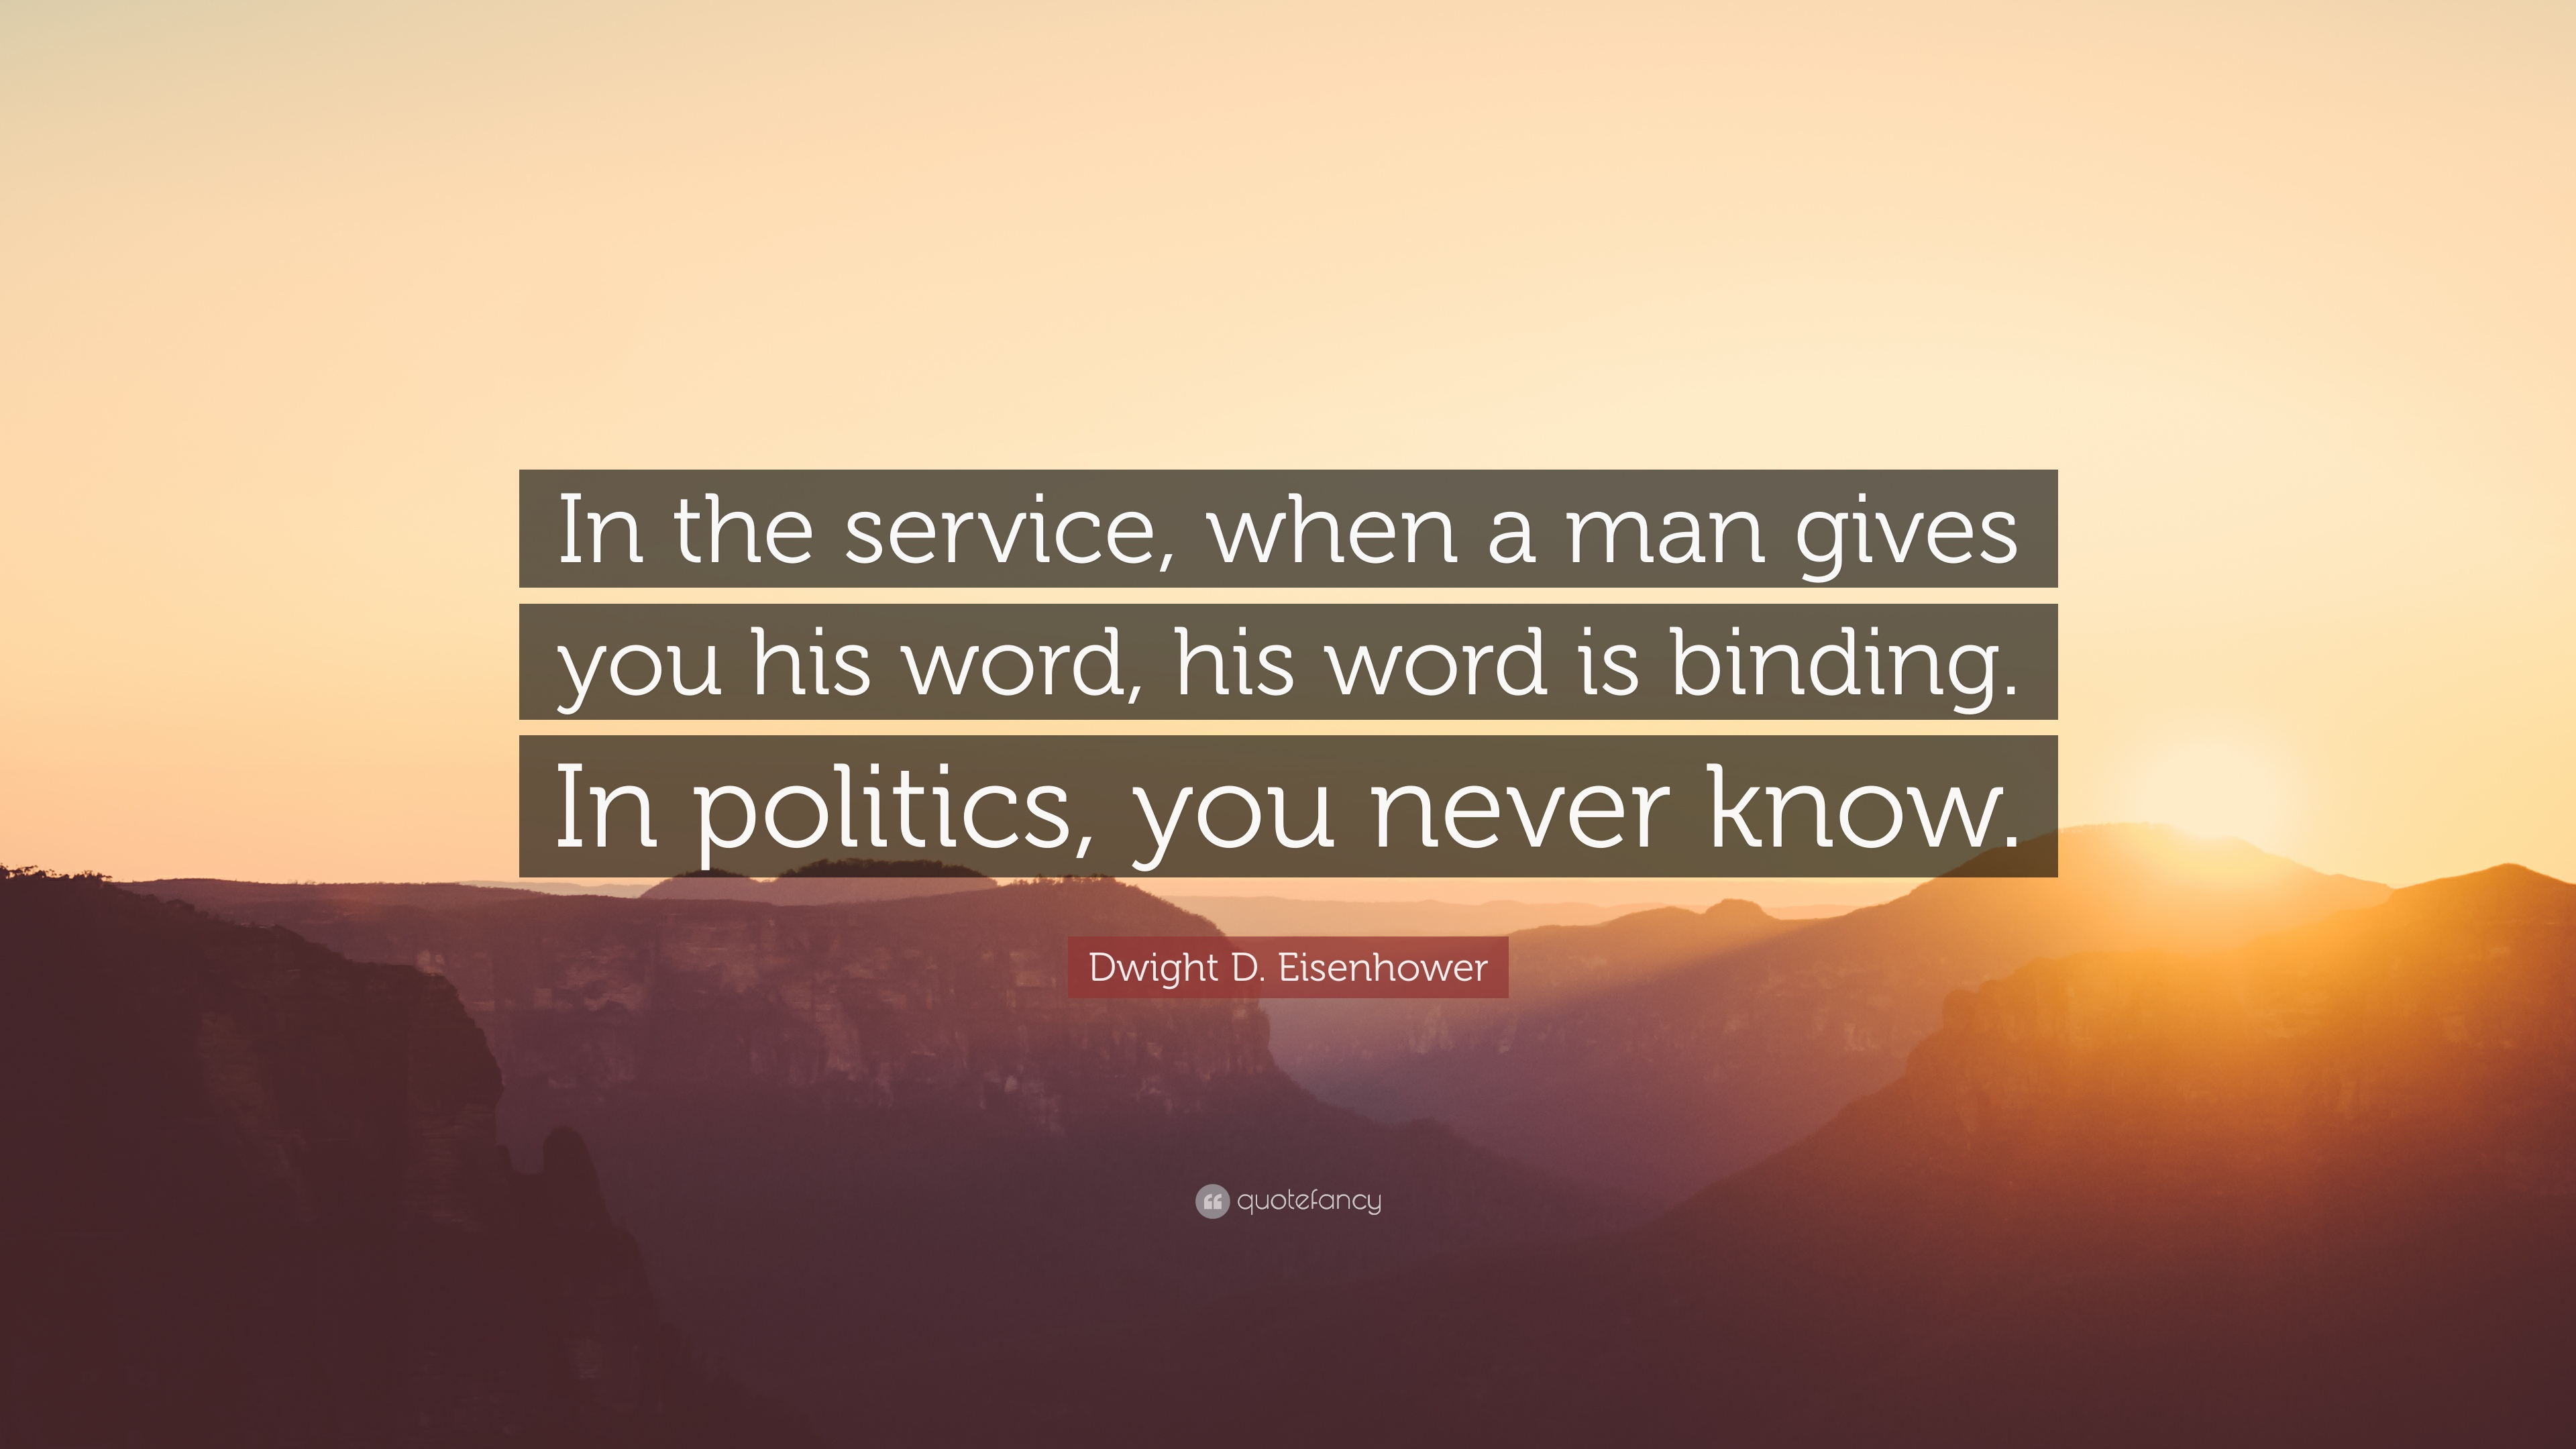 Dwight D Eisenhower Quote In The Service When A Man Gives You